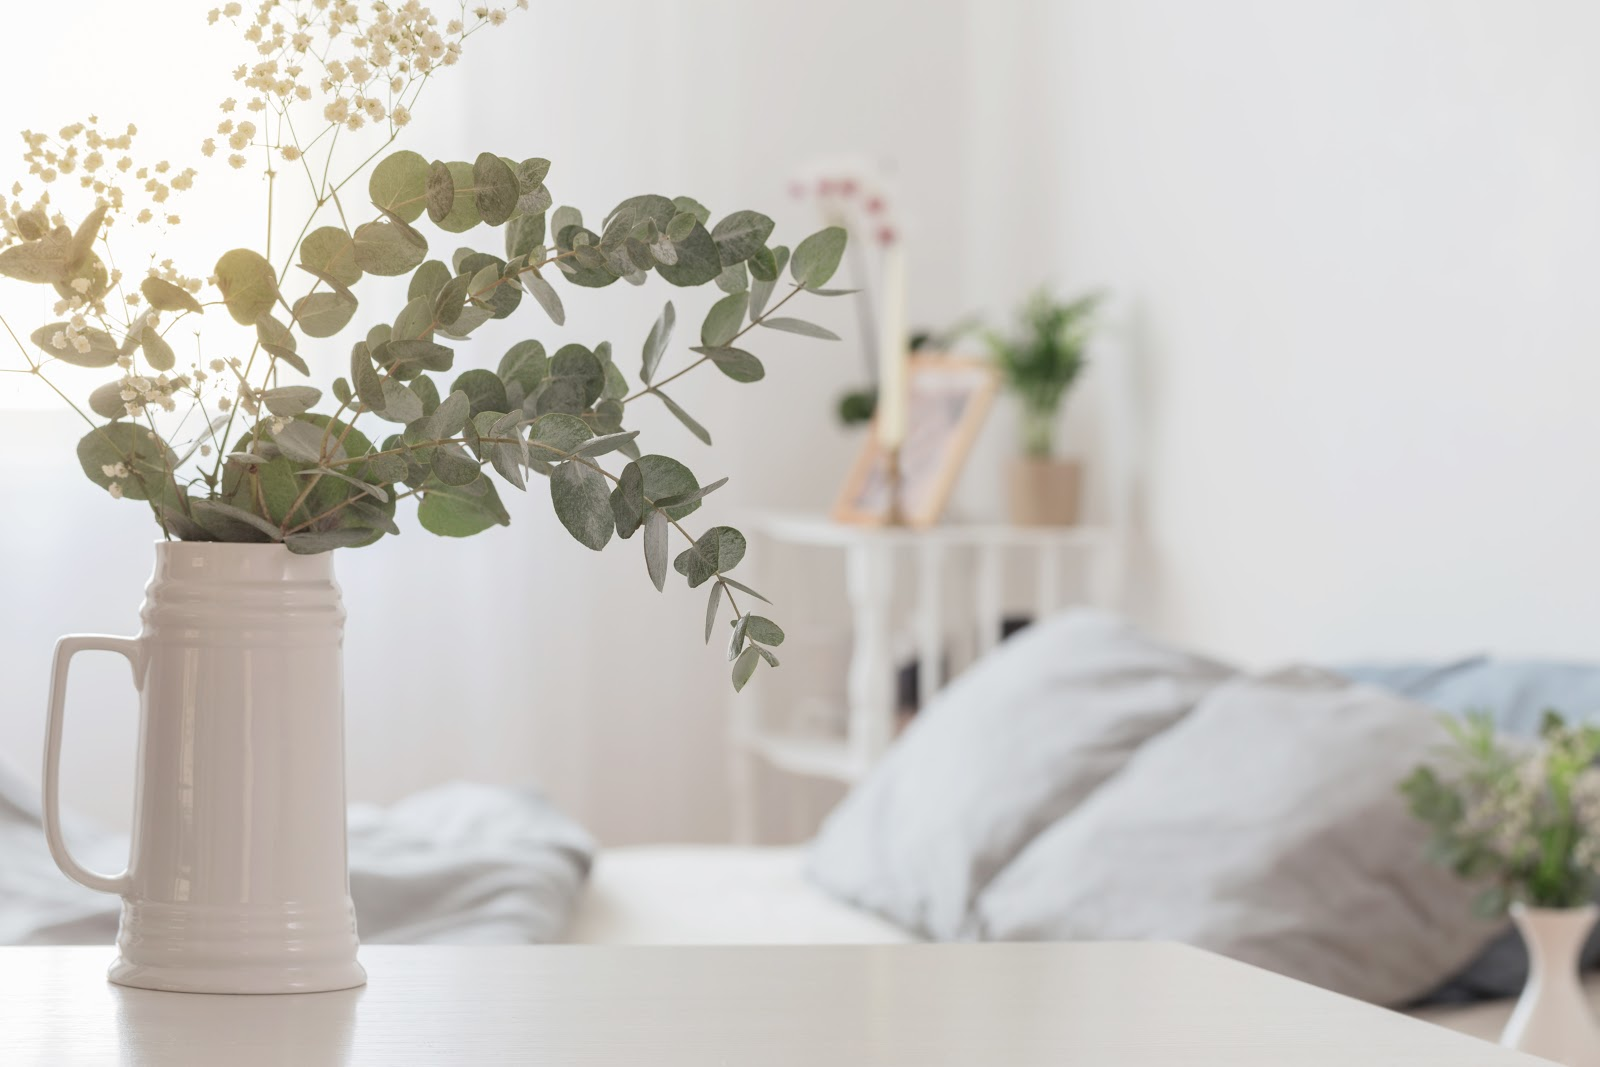 Eucalyptus and gypsophila flowers in a jug in white bedroom.